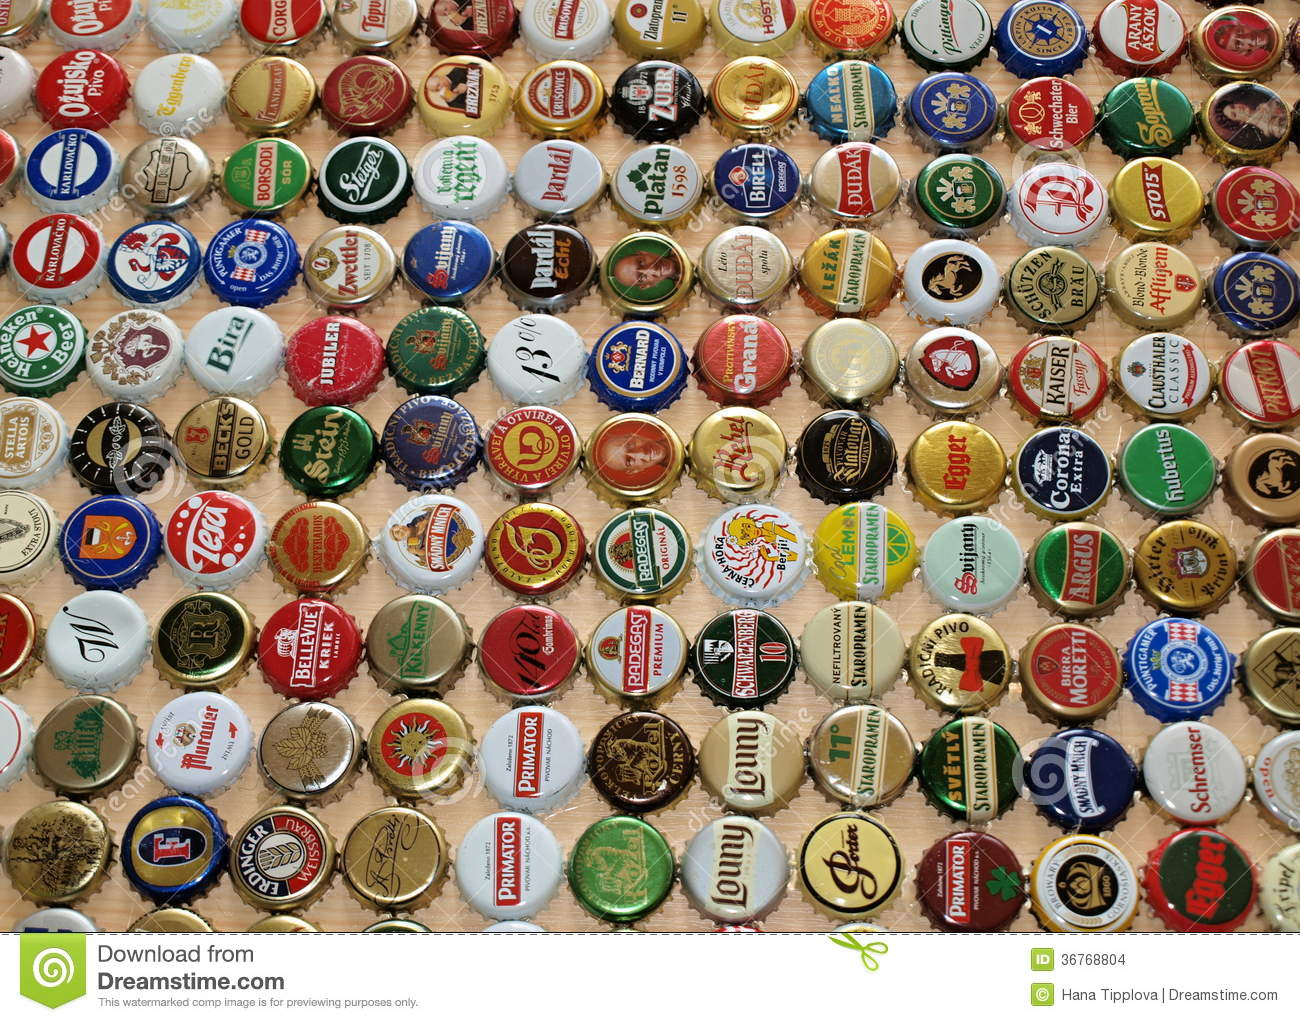 A collection of beer caps